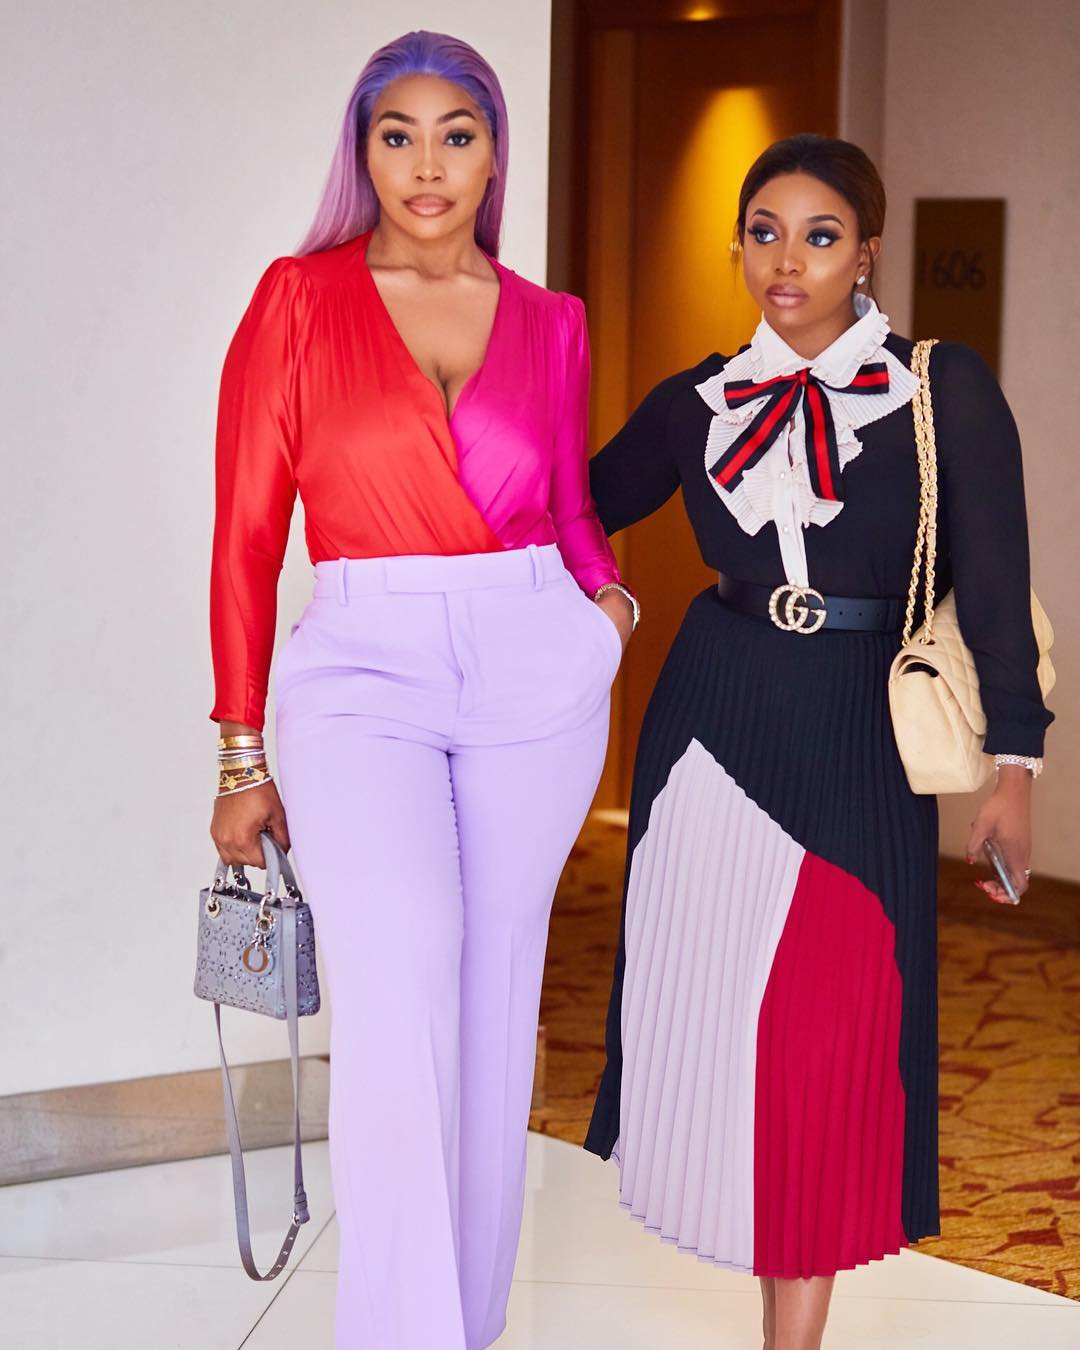 kika good in the 2018  arise fashion week in lovely wine red top and white pants